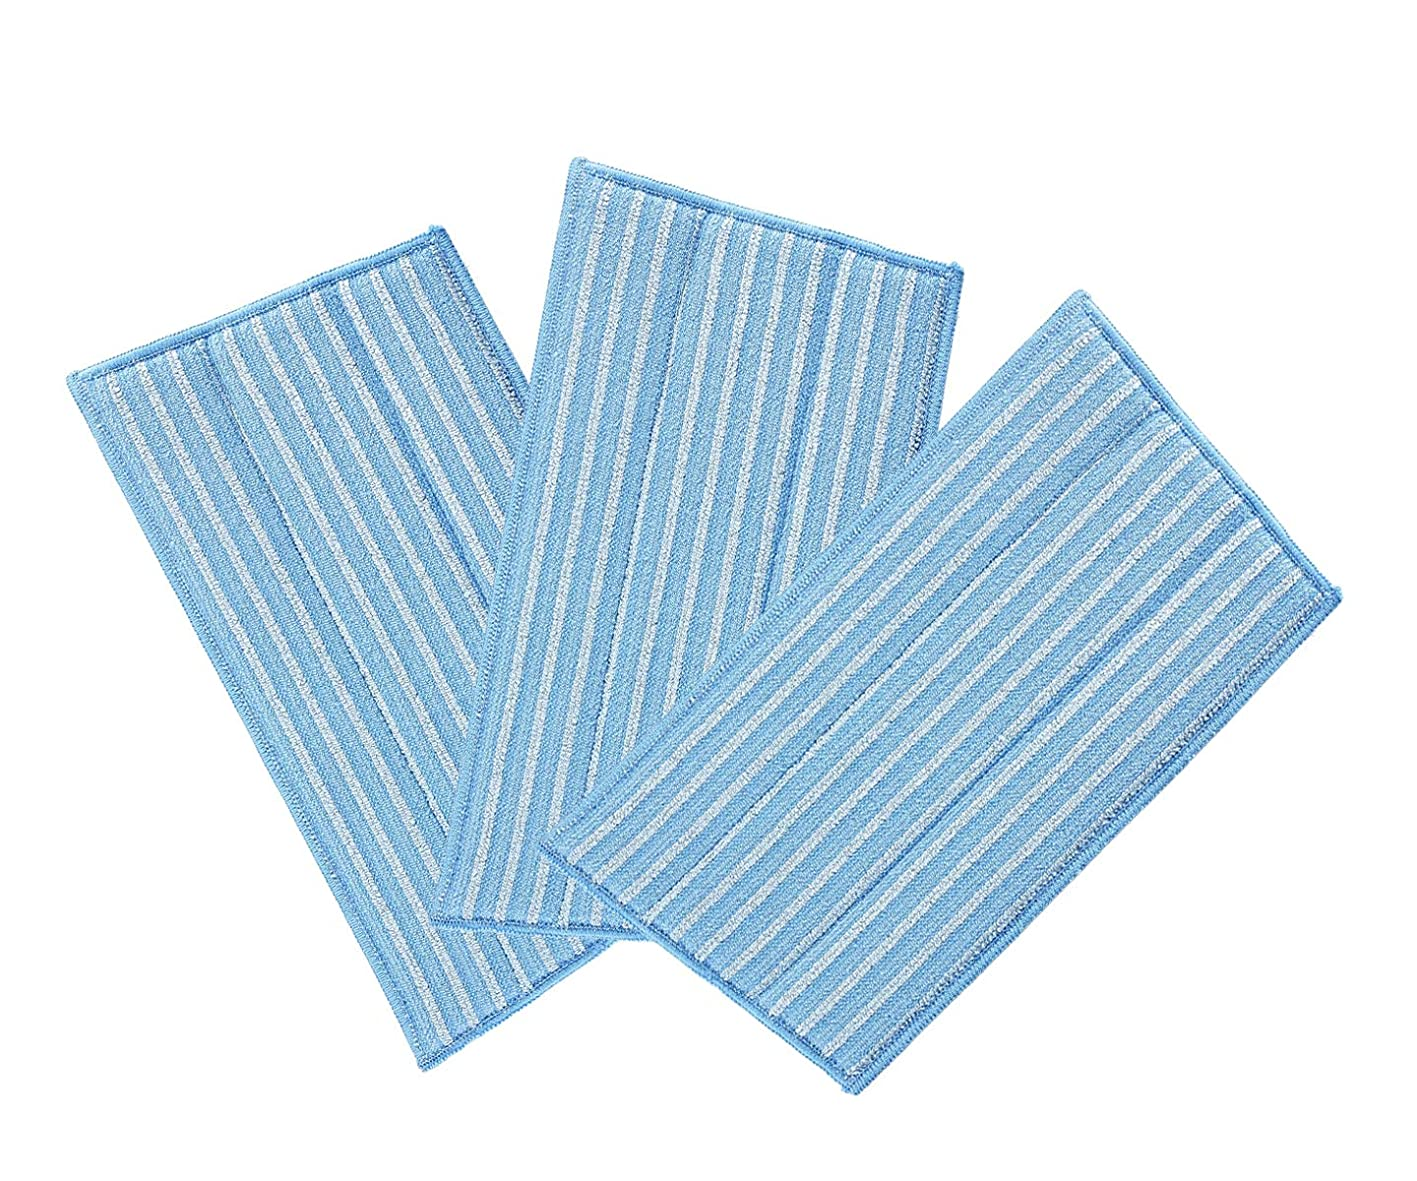 EZCARRIER Washable Steam Mop Pads Replacement for Haan Floor Steamer FS SI and MS Series SI-40 SI-70 SI-35 (Pack of 3) tulfpyuexqf278